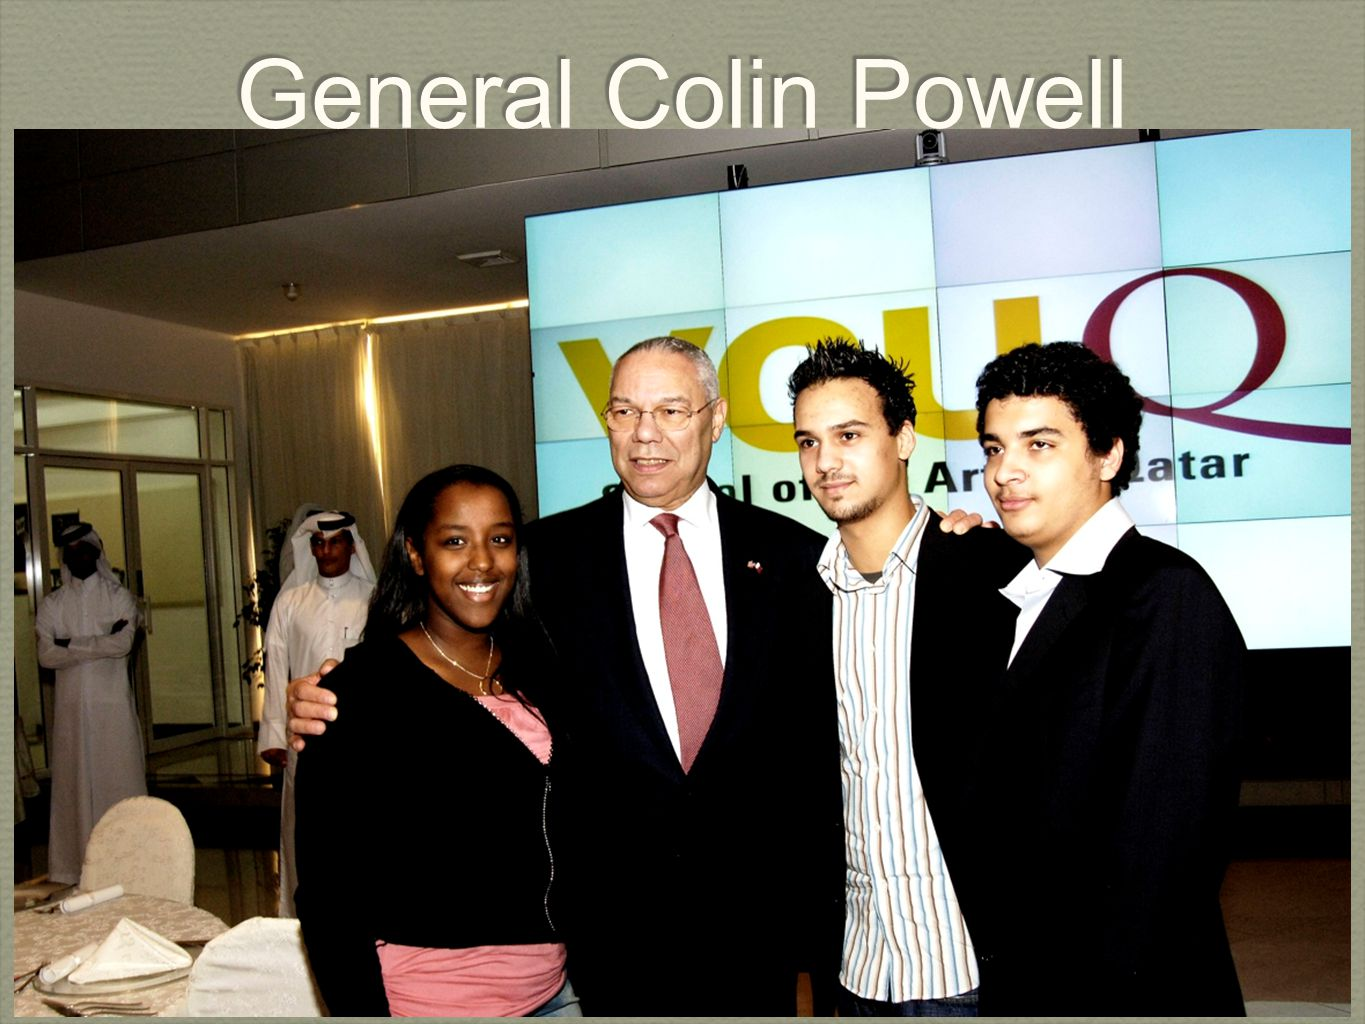 Virginia Commonwealth University in Qatar General Colin Powell